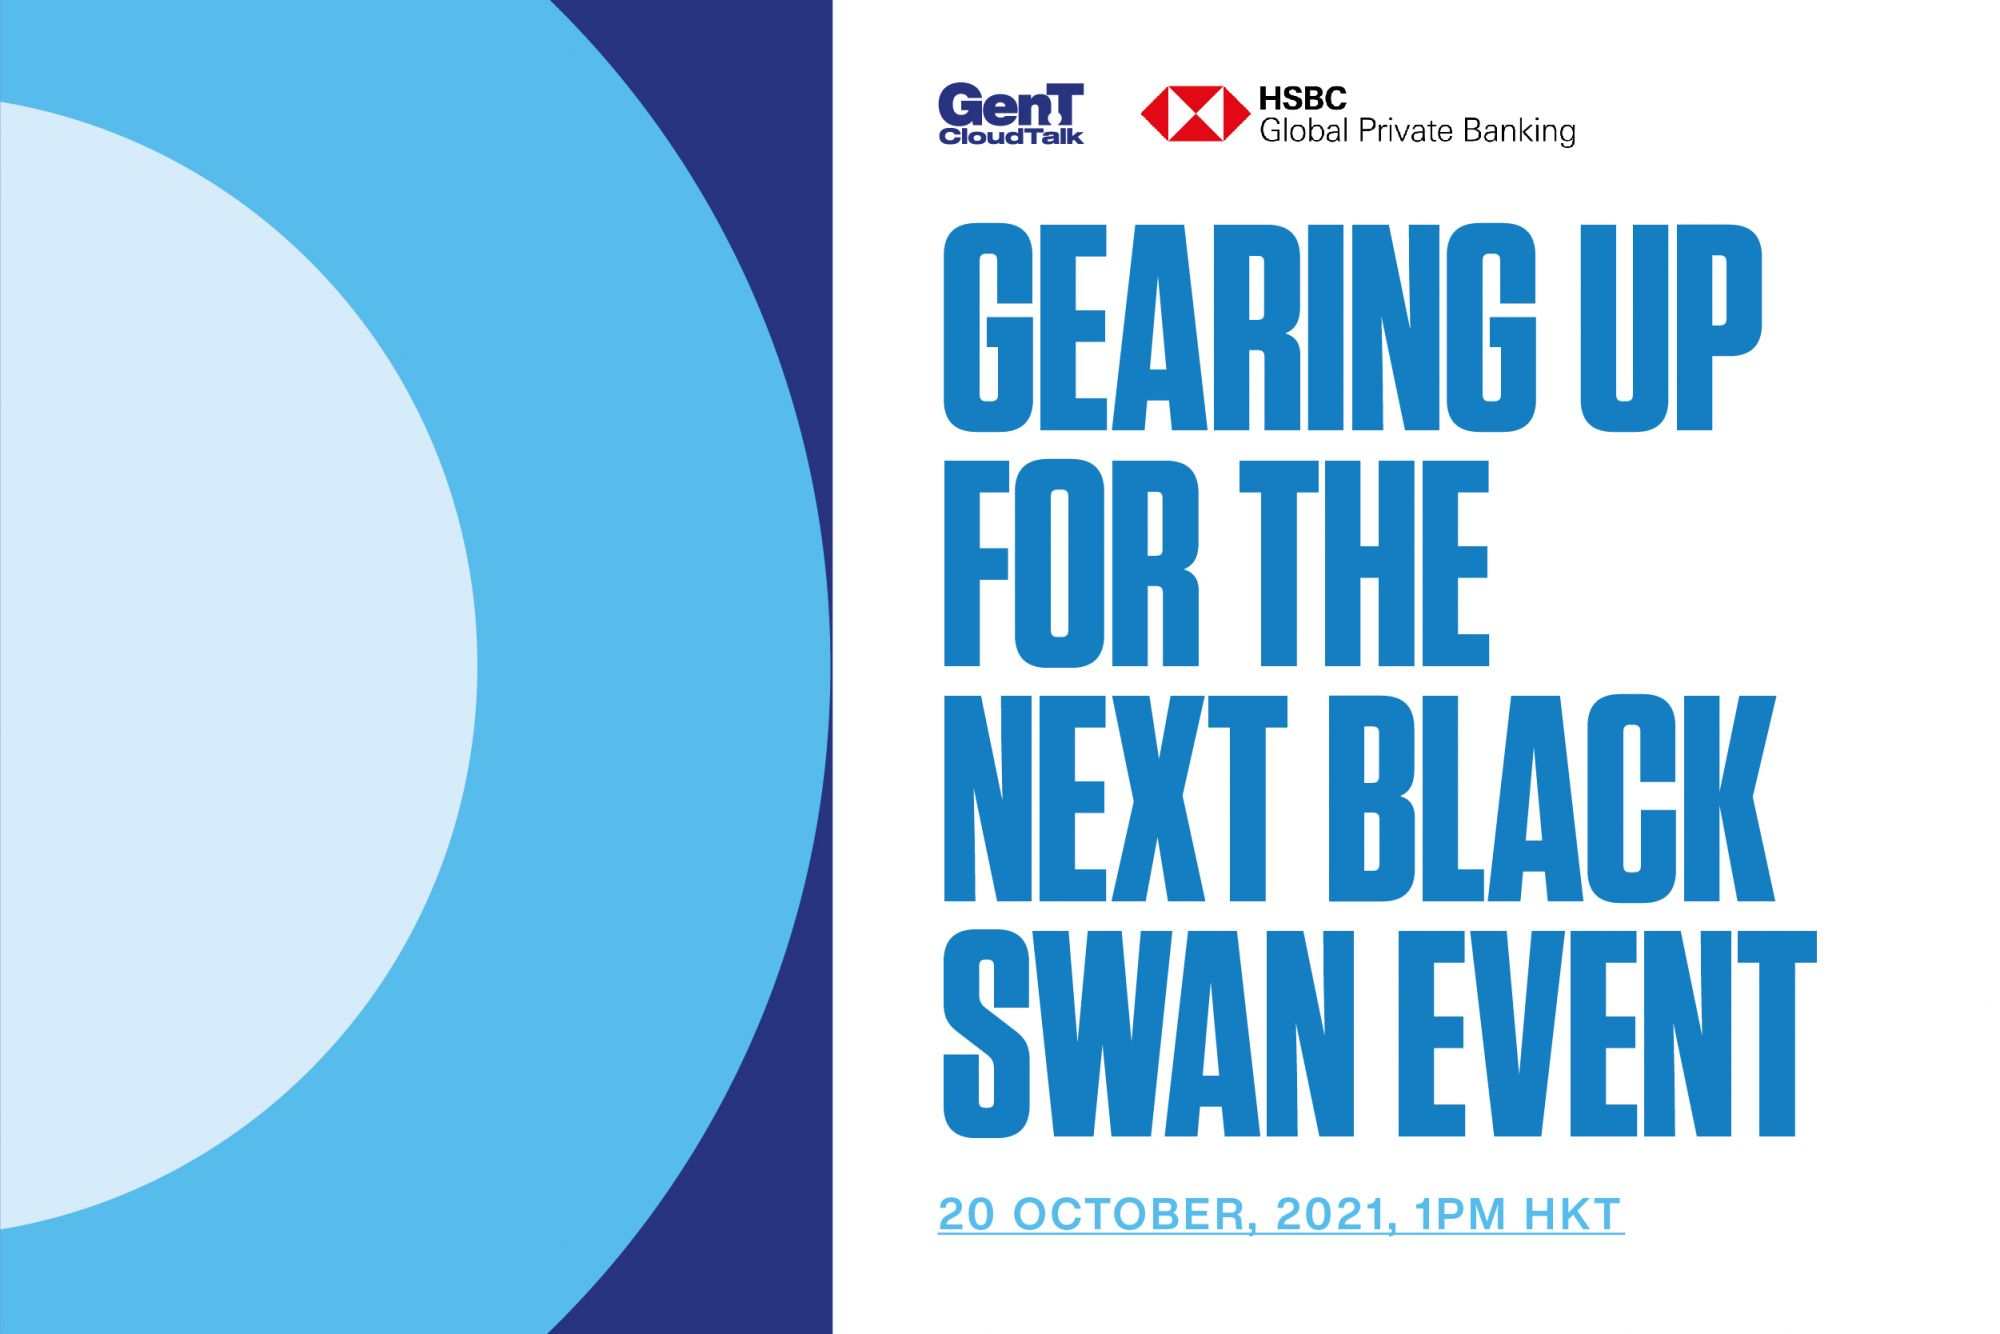 Cloud Talk: Gearing Up For The Next Black Swan Event